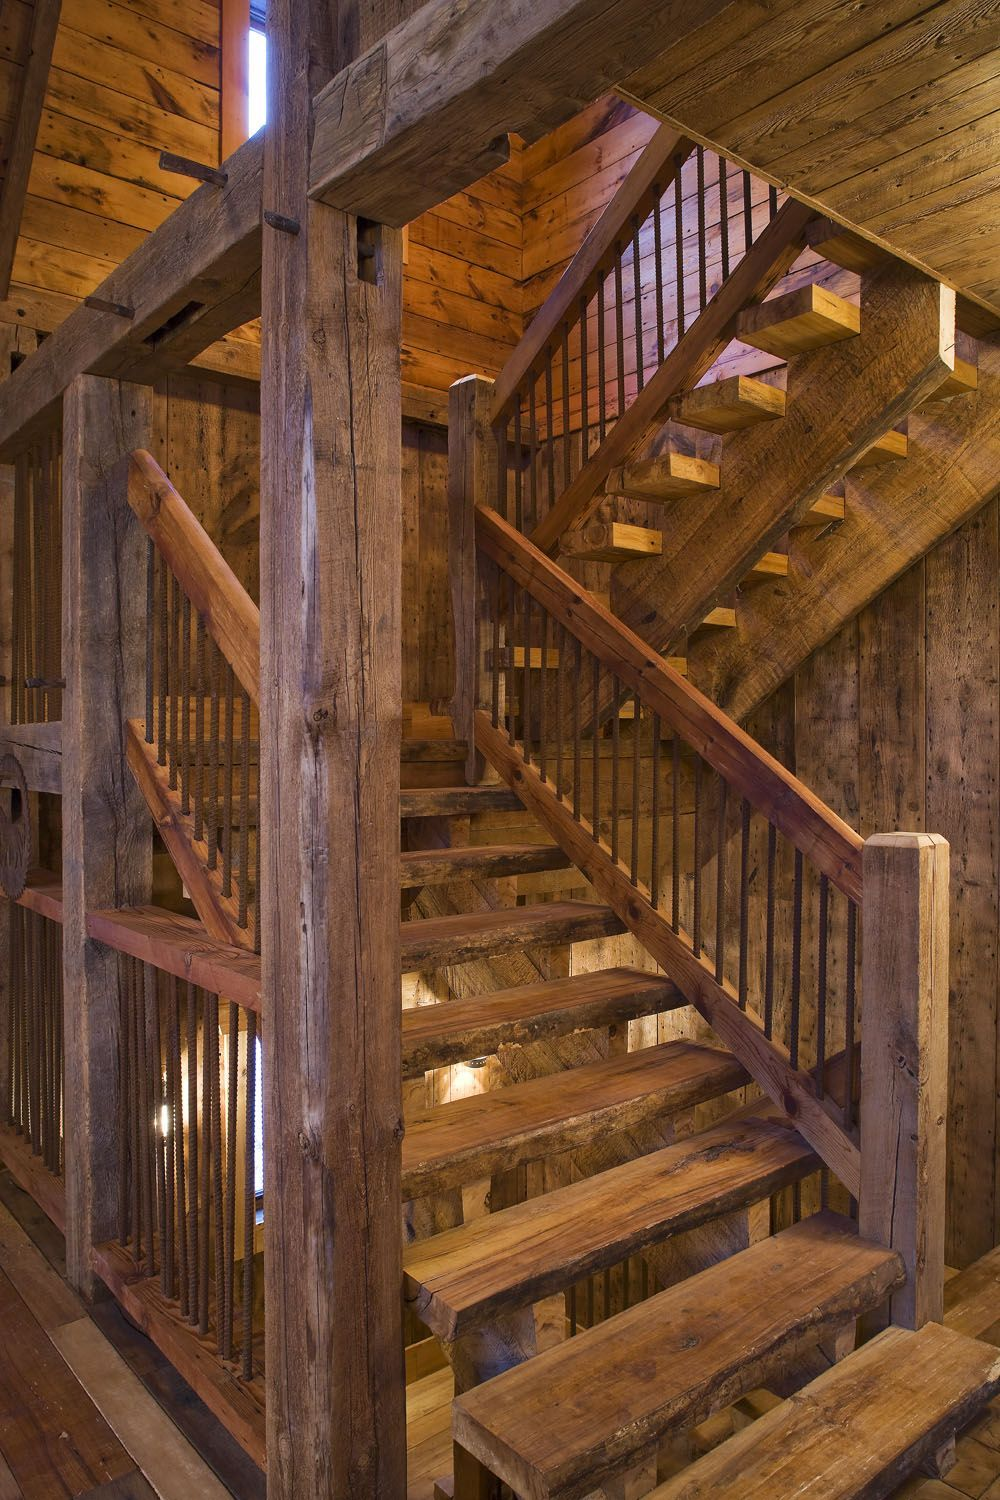 D1C77441Caf652155C2Ff02C42544E99 Jpg 1 000×1 500 Pixels   Timber Handrails For Stairs